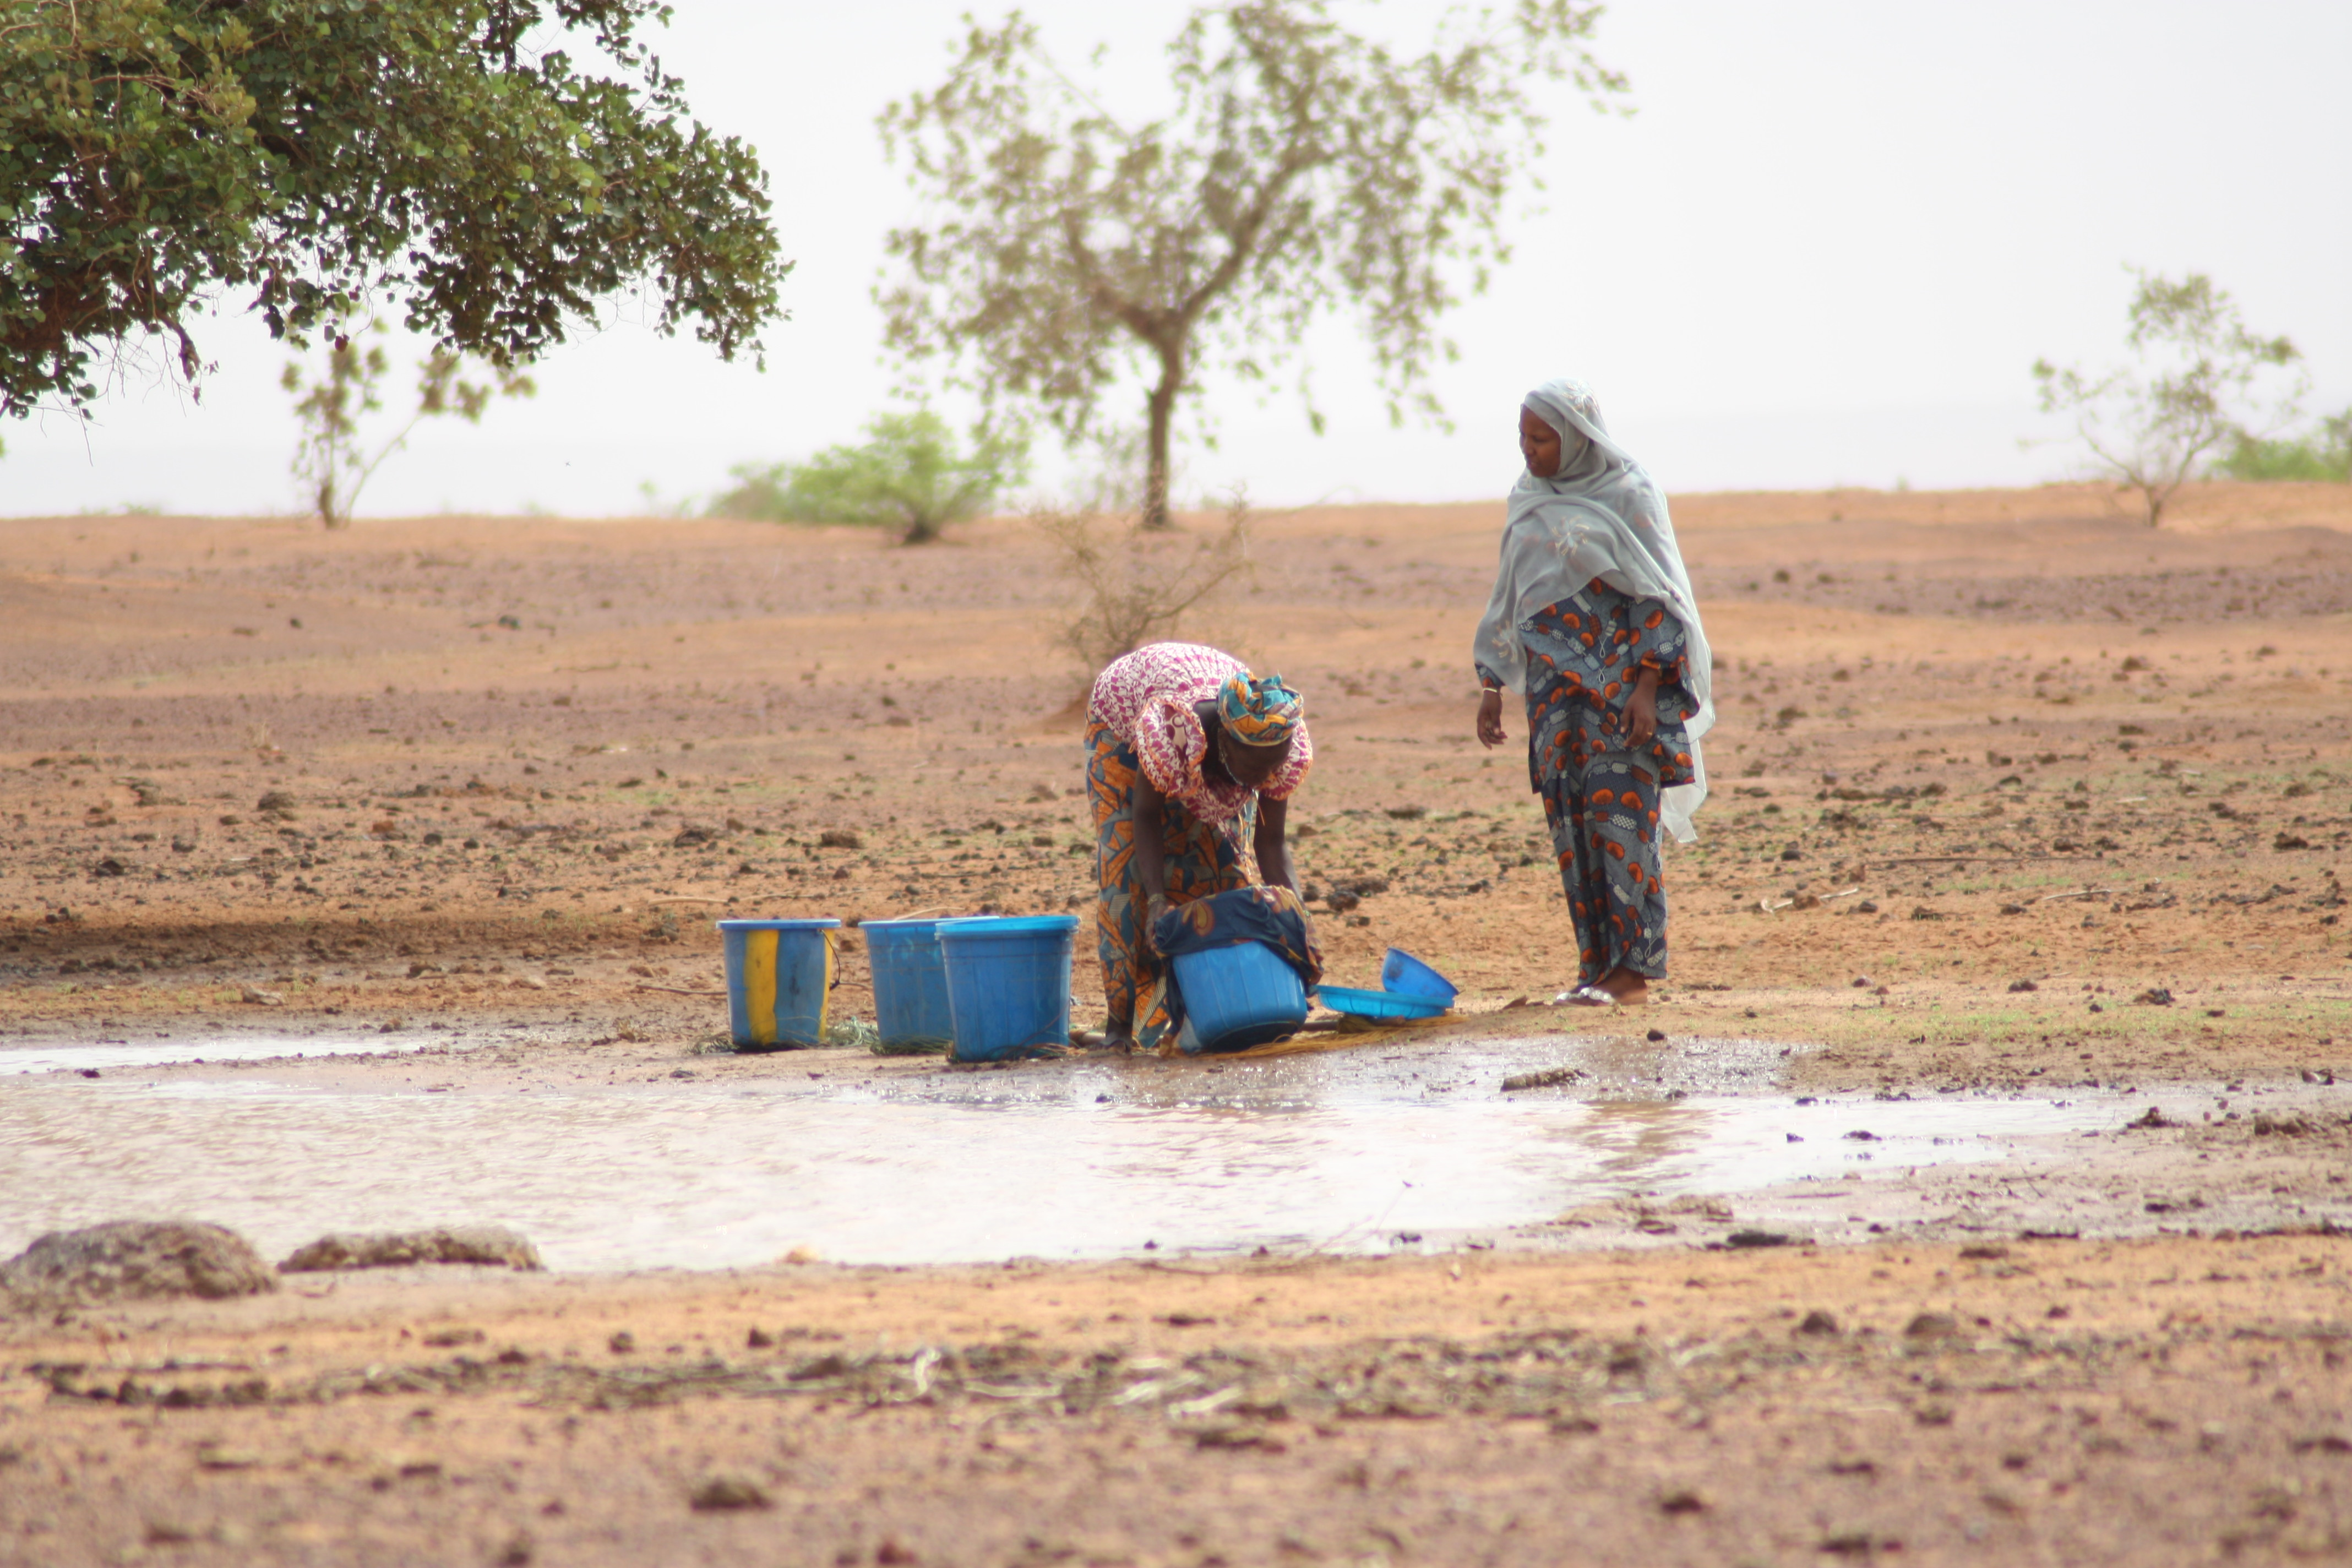 Two women collecting water from a water hole.